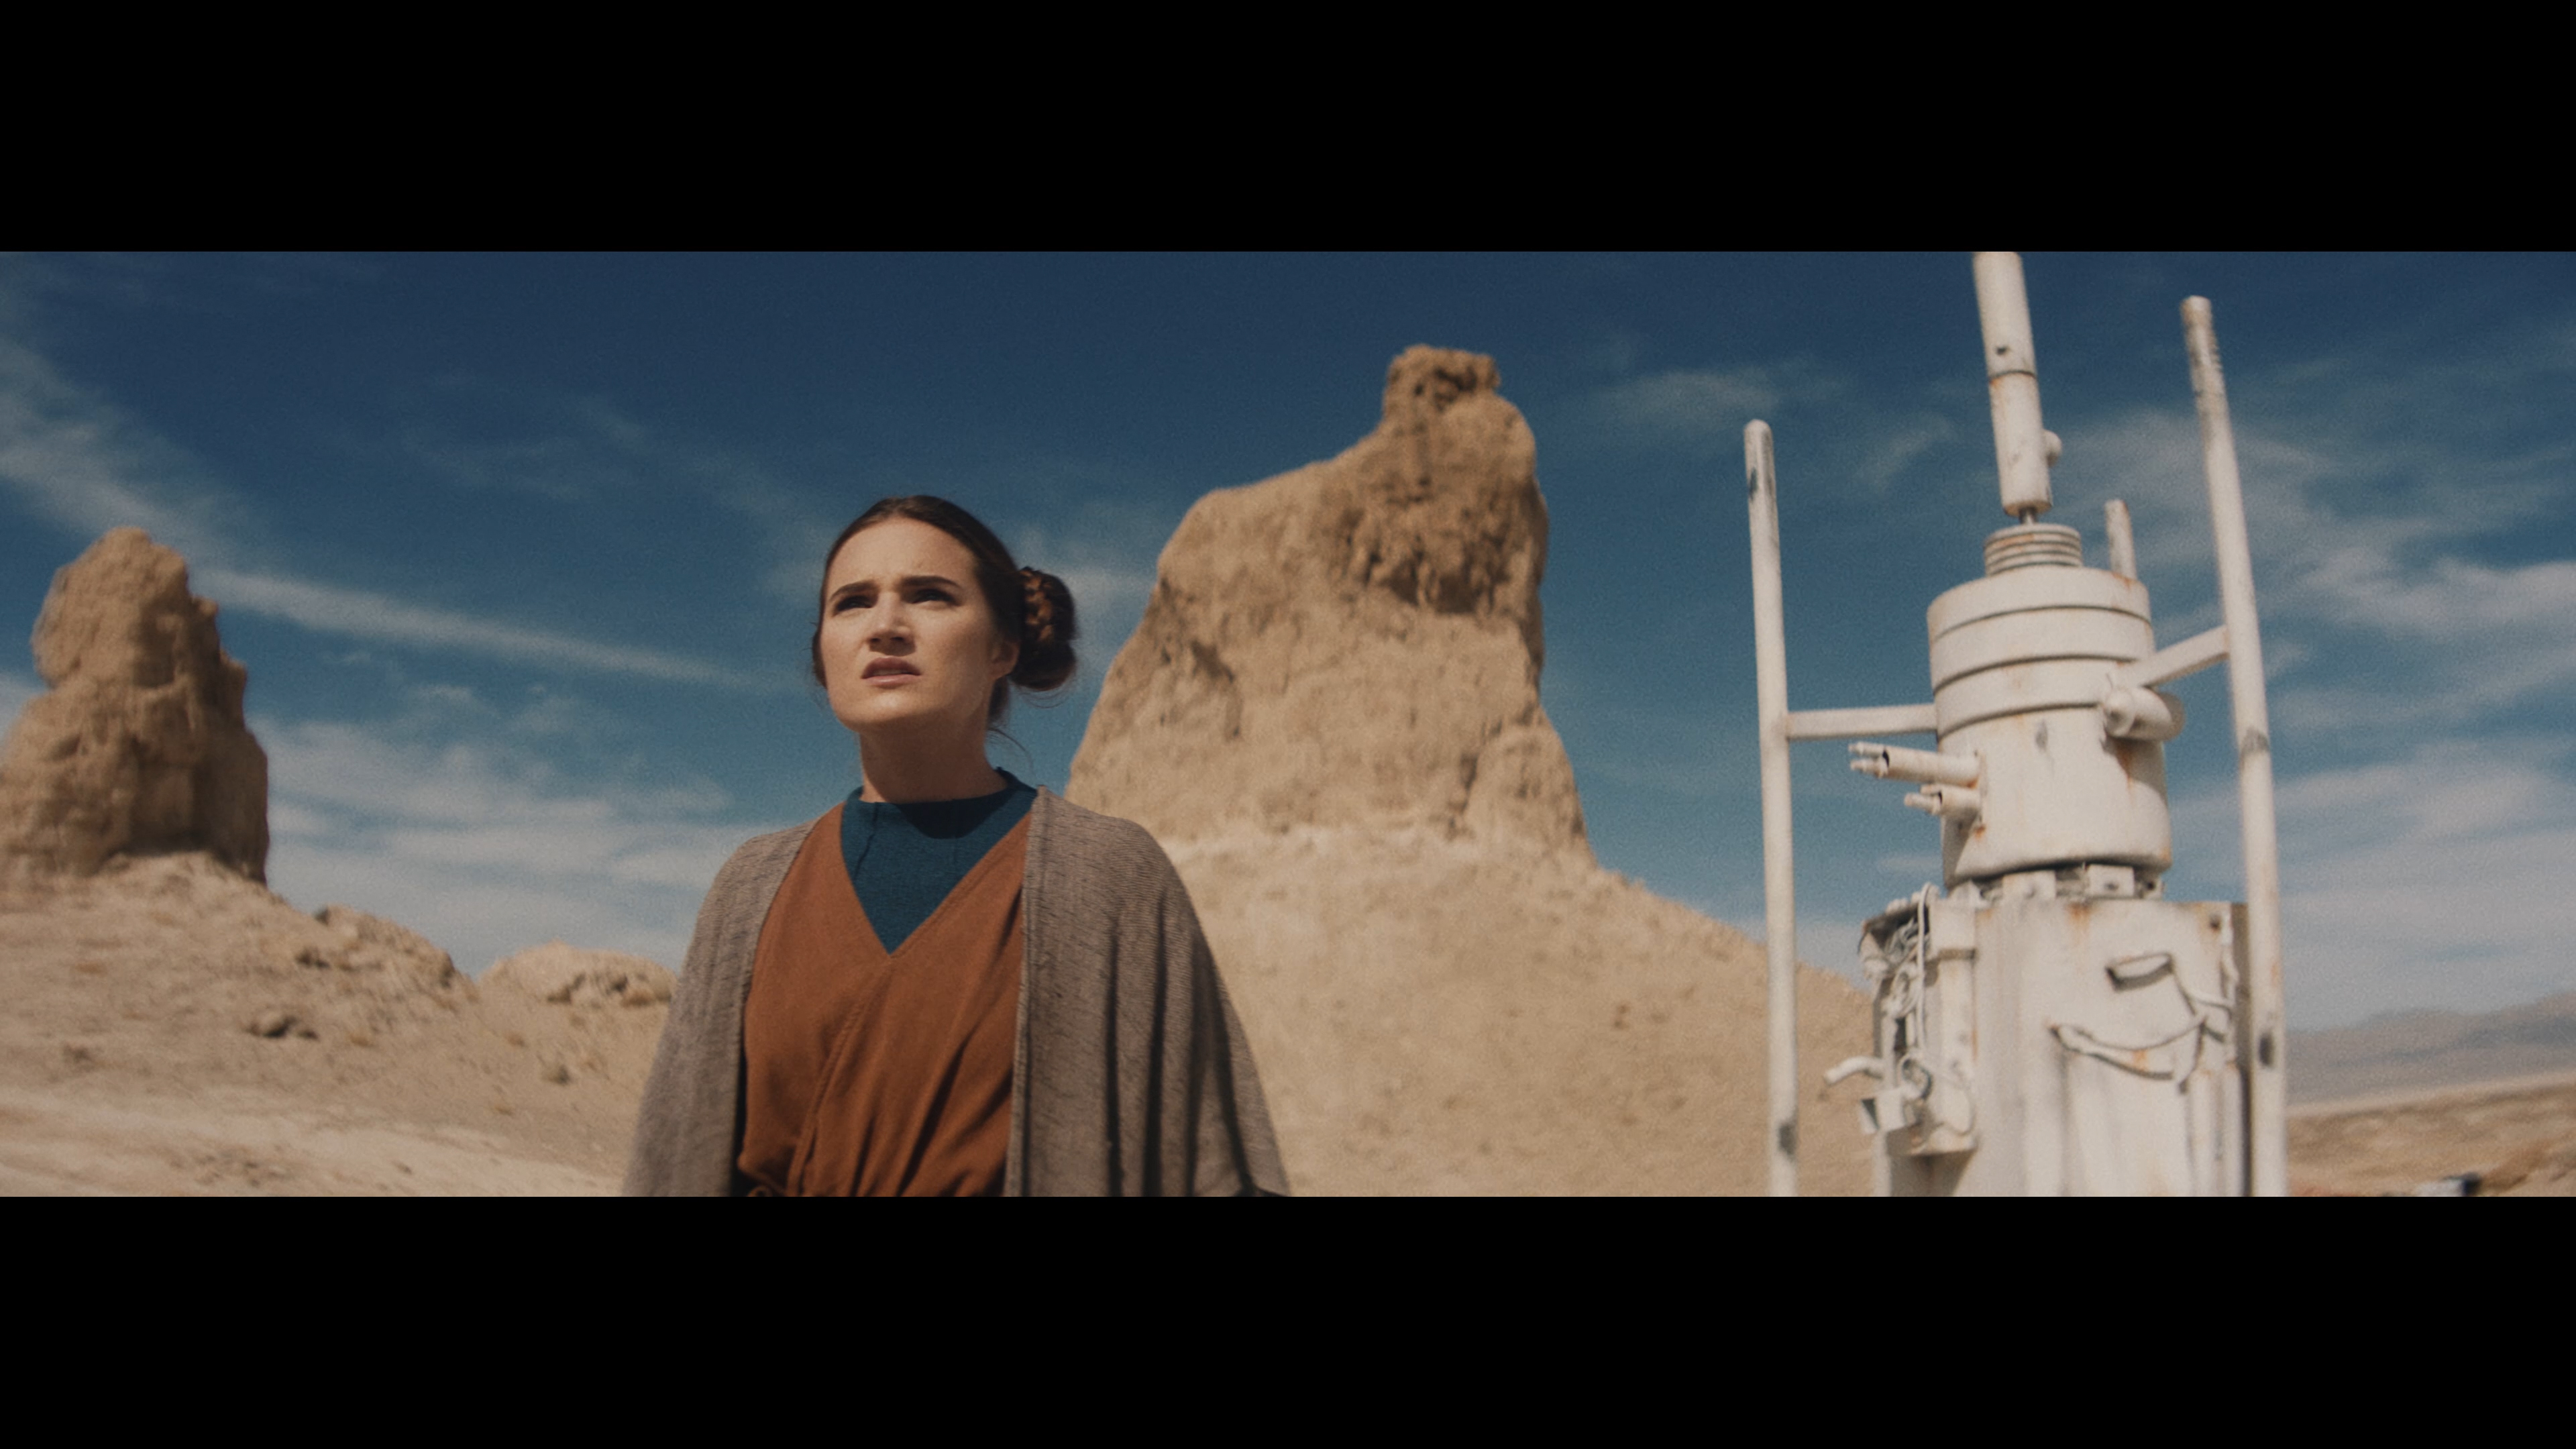 """In an image provided by the filmmakers, Maxine Phoenix stars in """"Kenobi,"""" a fan-made Star Wars live-action short that has more than 5.7 million views on YouTube. For the first time in half a decade, a year has gone by without a new """"Star Wars"""" film. But across YouTube, there are plenty of fan-made movies set in a galaxy far, far away. (Jac Cheairs via The New York Times) -- NO SALES; FOR EDITORIAL USE ONLY WITH STARWARS FAN FILMS ADV10 BY PHILBRICK FOR JAN. 10, 2021. ALL OTHER USE PROHIBITED. --"""